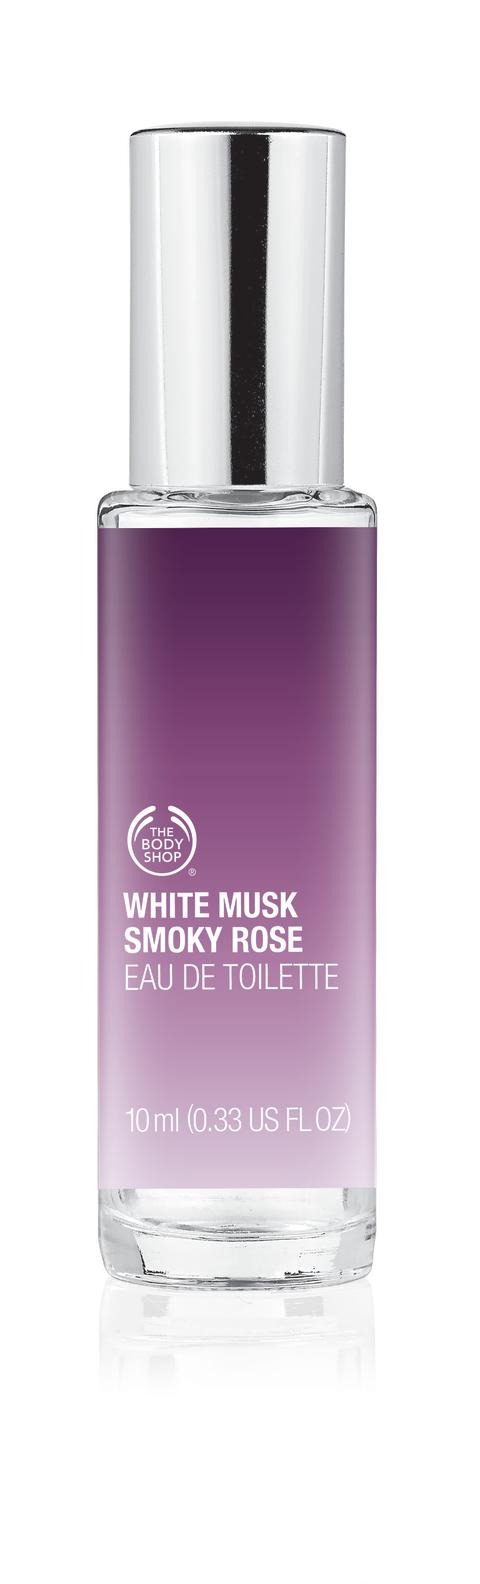 White Musk Smoky Rose Mini EdT